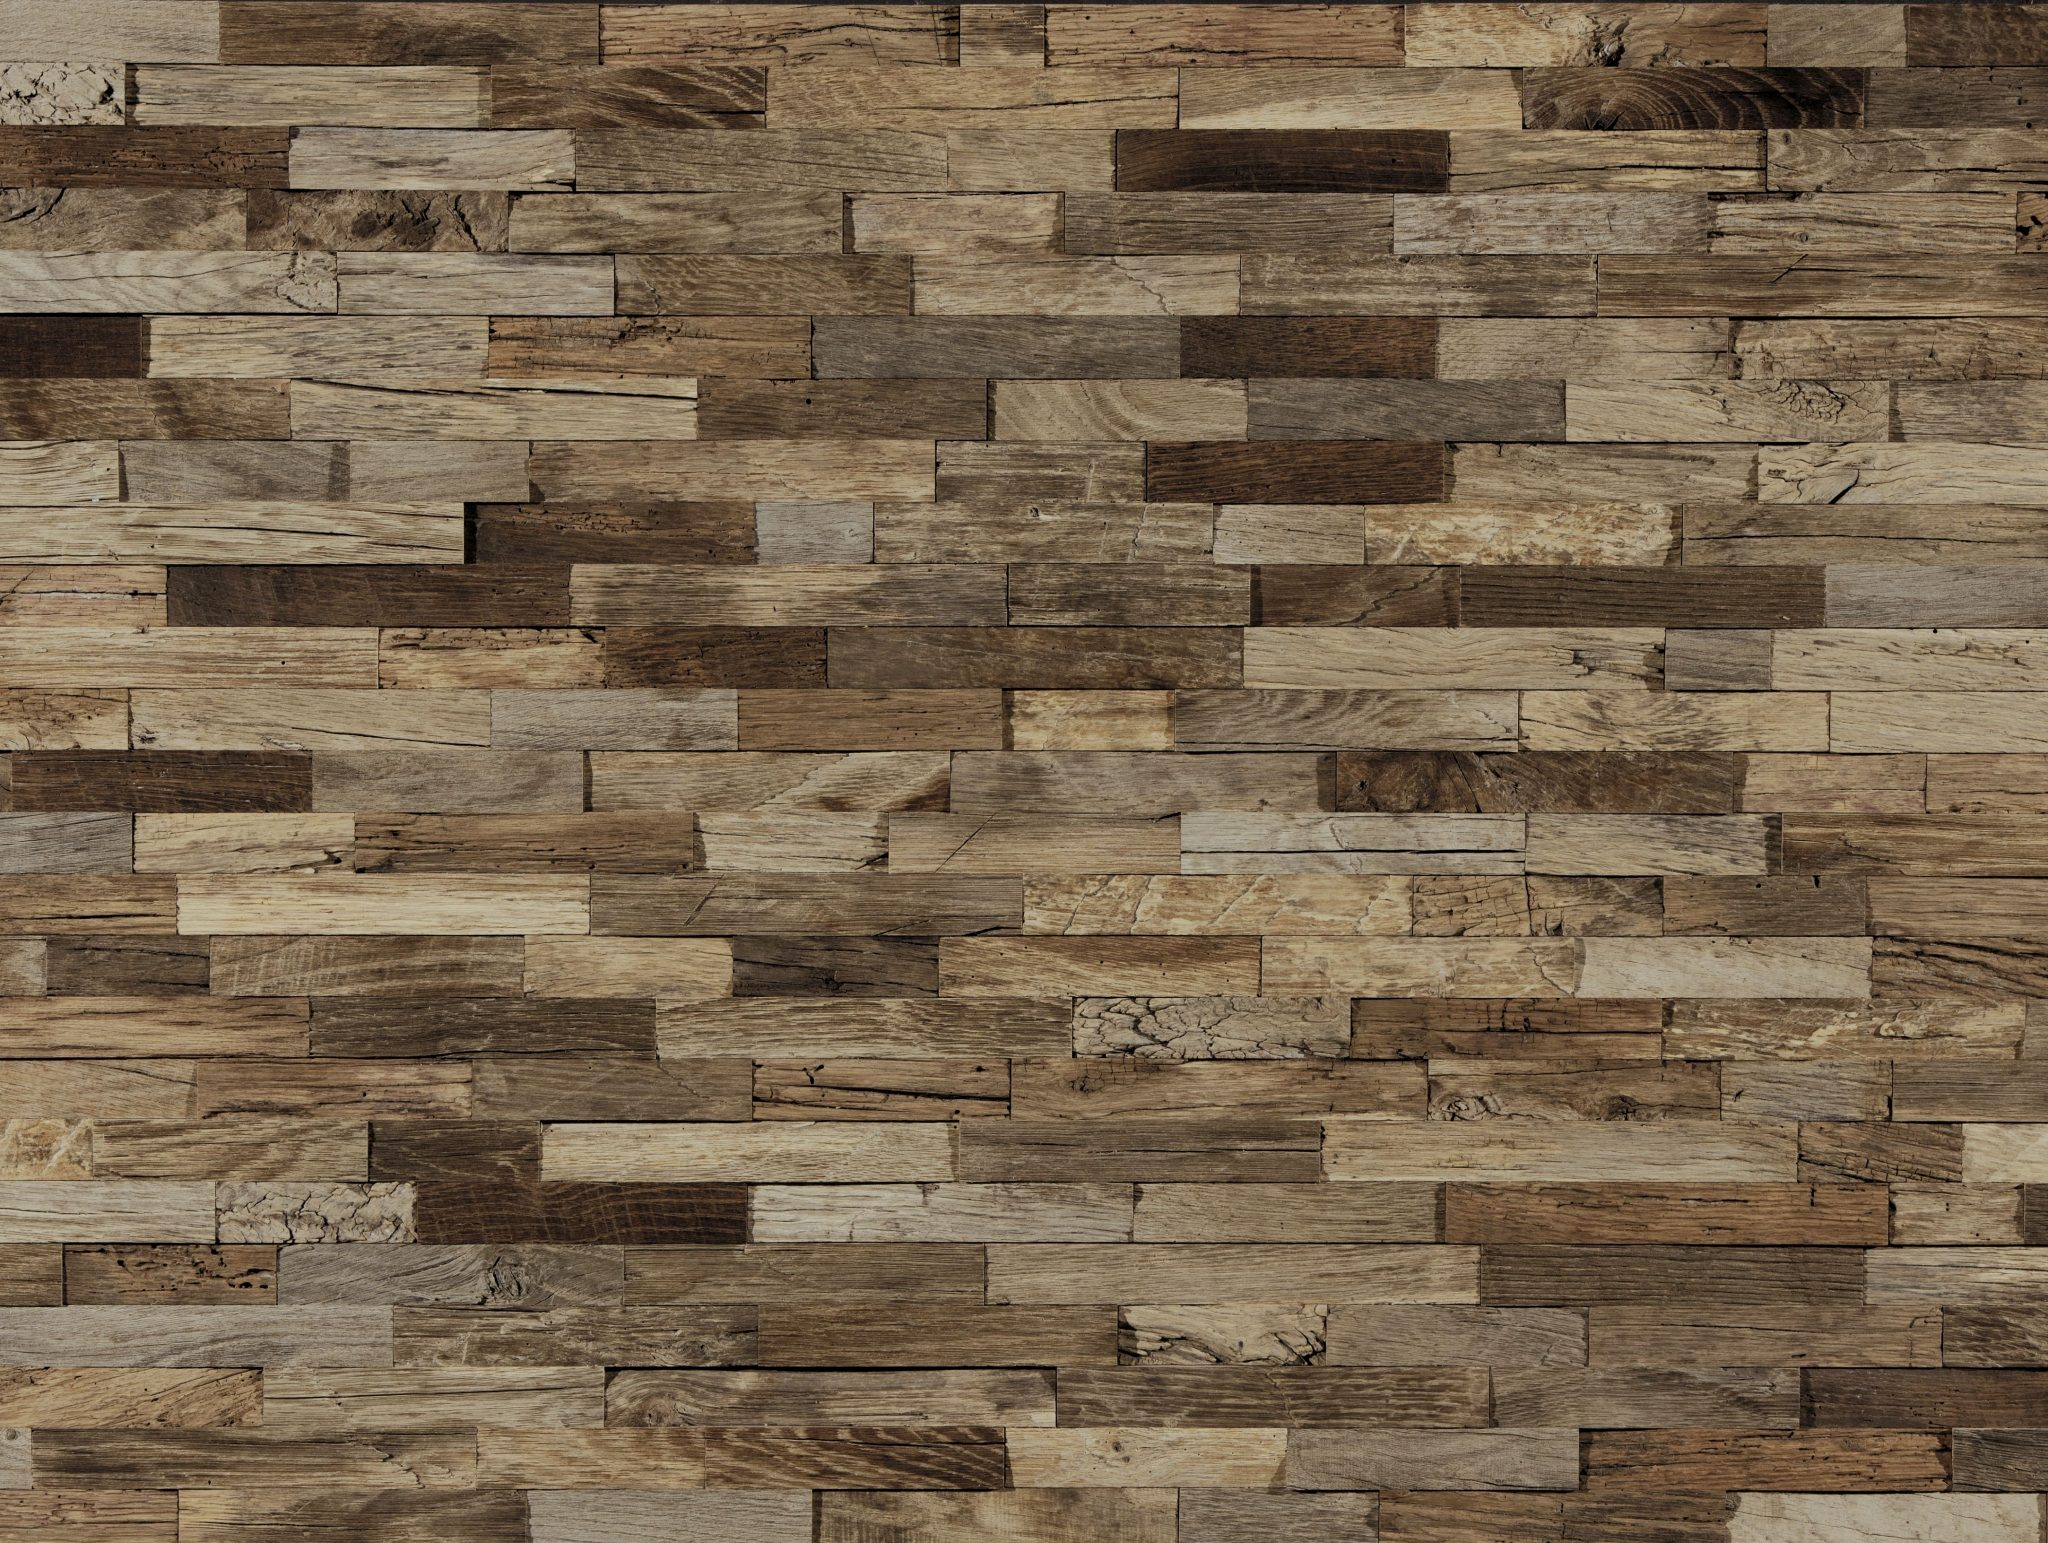 Designer walls and floors vidaspace hrc1960 outland - Wooden cladding for exterior walls ...